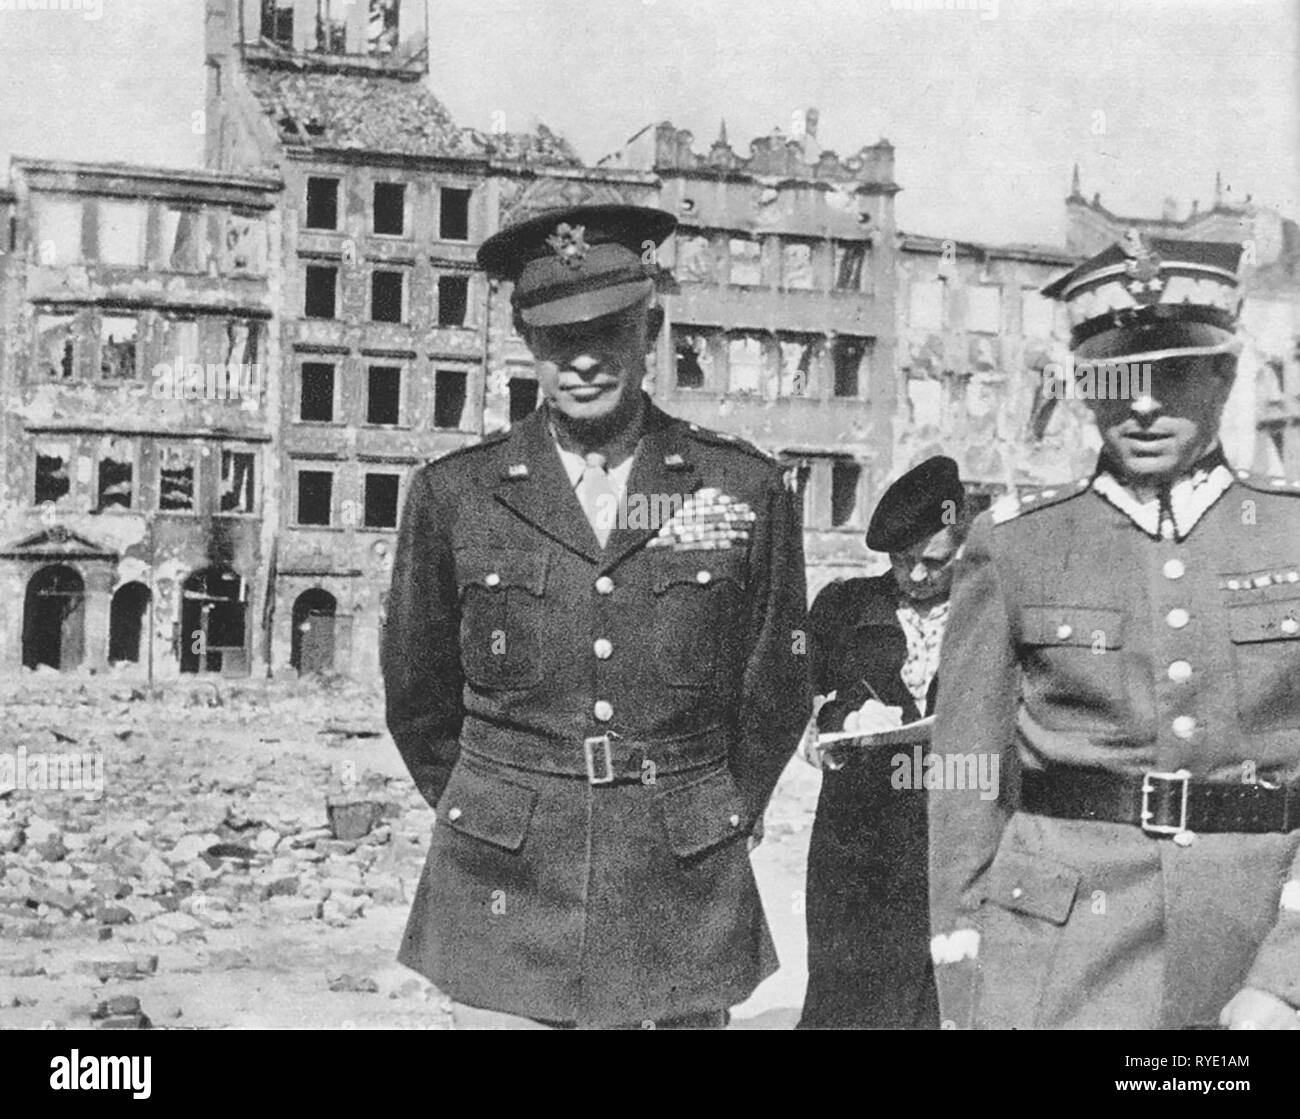 General Dwight Eisenhower during his visit in Warsaw, capital of Poland. Picture taken on the Old Town Square, destroyed in 1944 by German forces after supression of Warsaw Uprising (1944). Right, General Marian Spychalski. - Stock Image